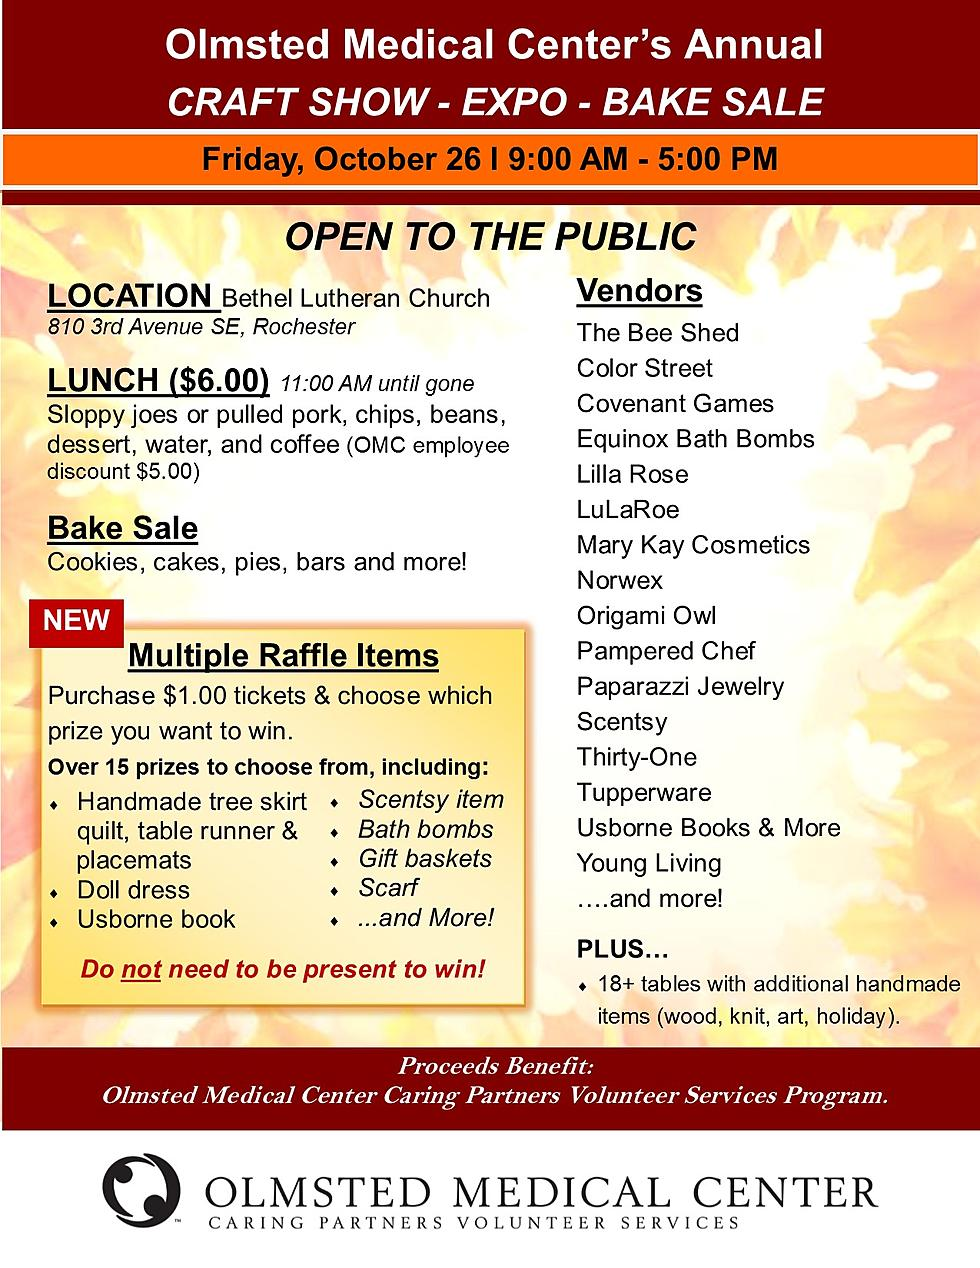 Olmsted Medical Center Craft Fair Expo